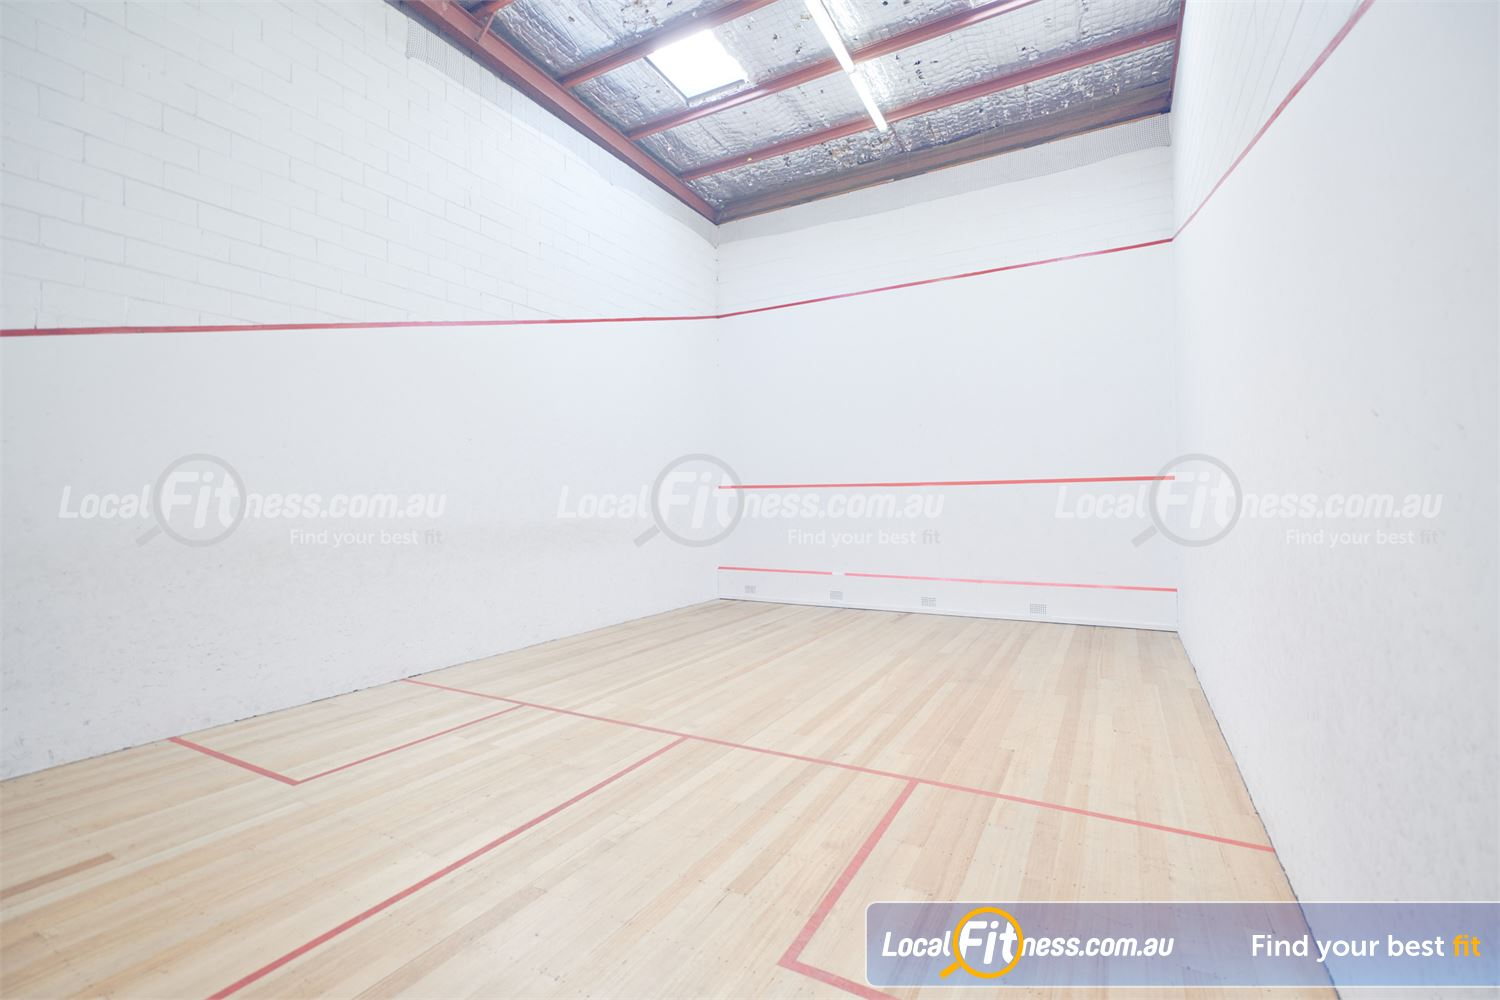 Goodlife Health Clubs Near Braeside Goodlife Dingley provides 2 indoor squash courts.